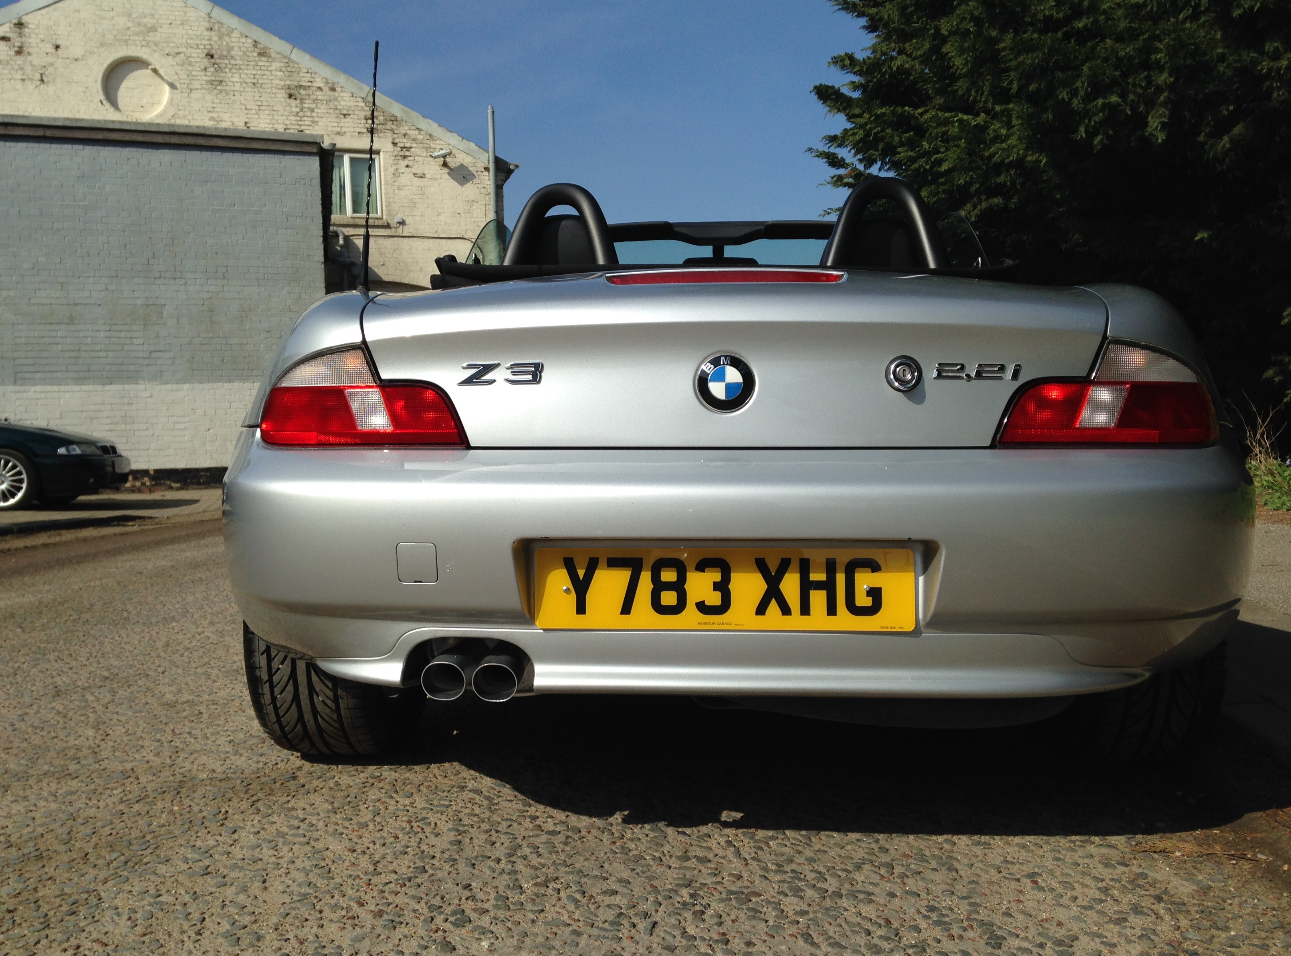 2001 Bmw Z3 2 2 This Bmw Z3 Is The Desirable 2 2 6 Cylinder Engined Model Providing Spiri